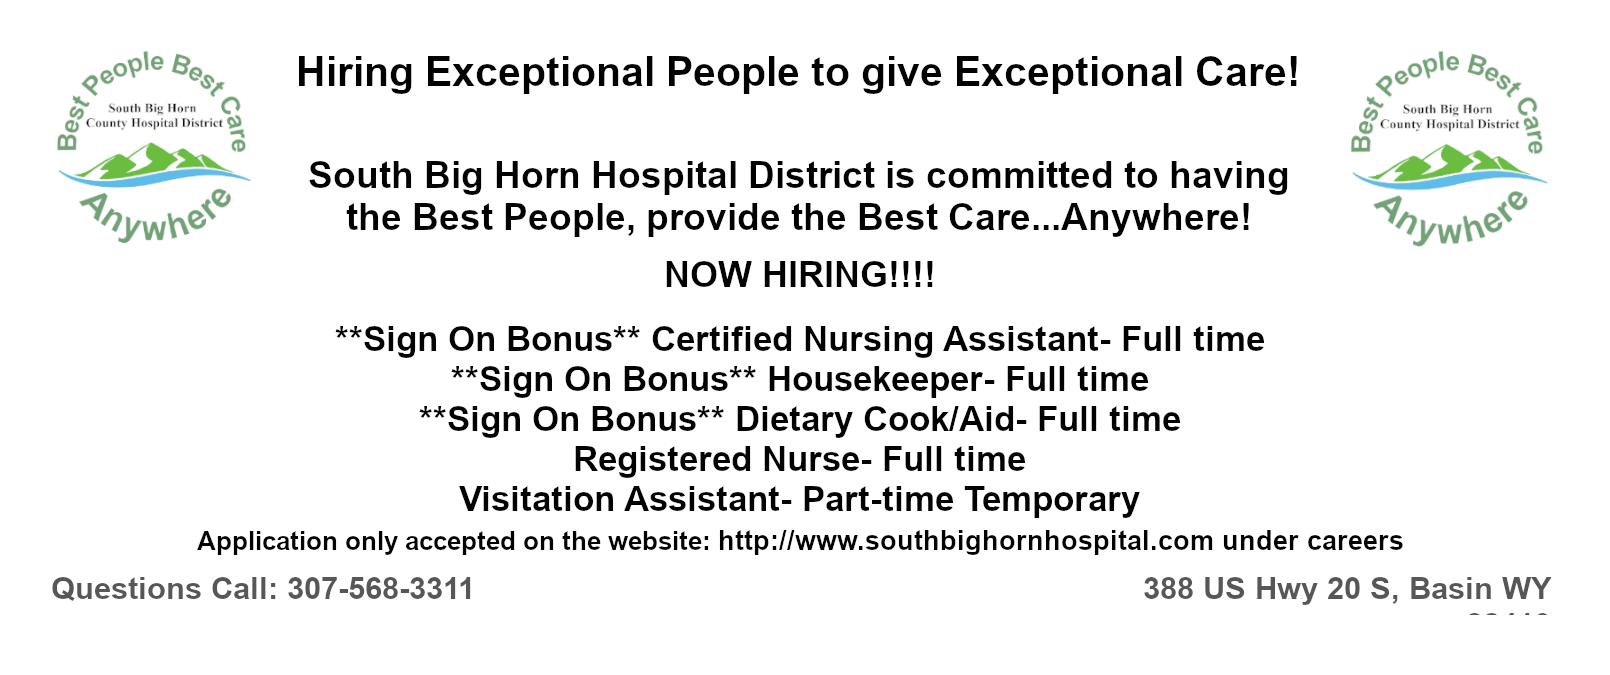 South Big Horn County Hospital is offering Hospital Registered Nurse- Full-Time and PRN positions Nursing Home Registered Nurse- Full-time and PRN positions Night Shift Certified Nursing Assistant Full-Time positions Laboratory Medical Technician-Full-Time and PRN positions Dietary Cook/Aid- Full Time 3 days per week Clinic LPN Full-Time Monday-Friday positions  We offer a full benefit package, paid time off and 401k program. Visit our website and apply online at: www.southbighornhospital.com